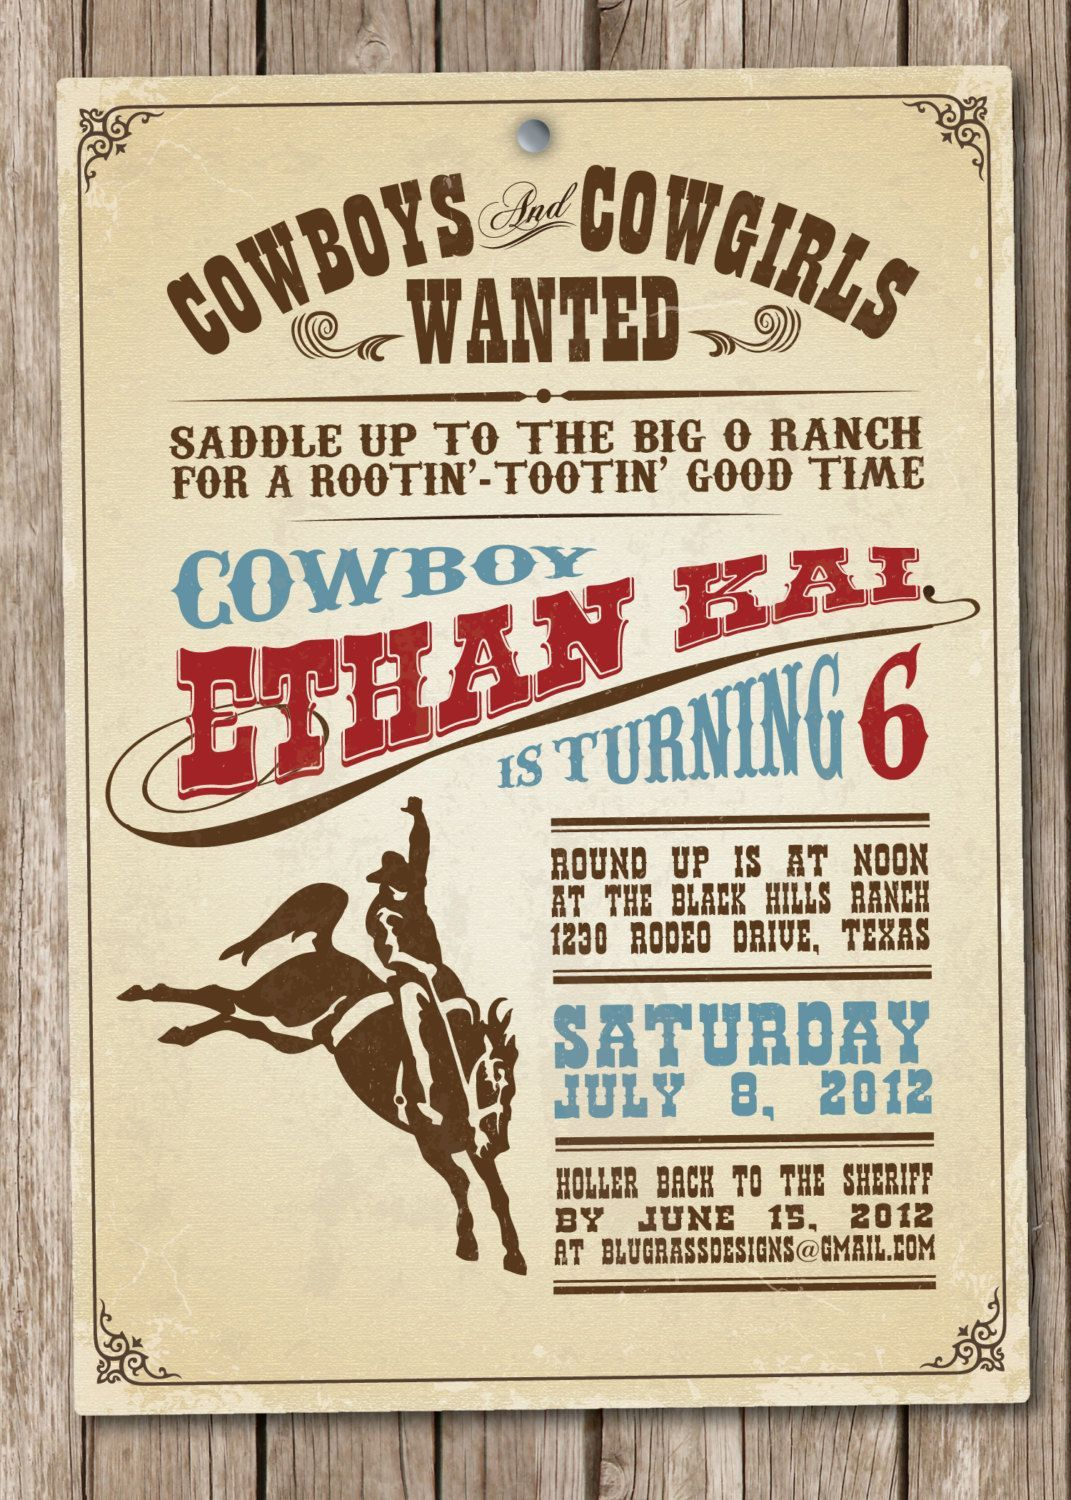 Cowboy Invitations Template Free Cowboy Party Invitations Cowboy Birthday Party Invitations Cowboy Party